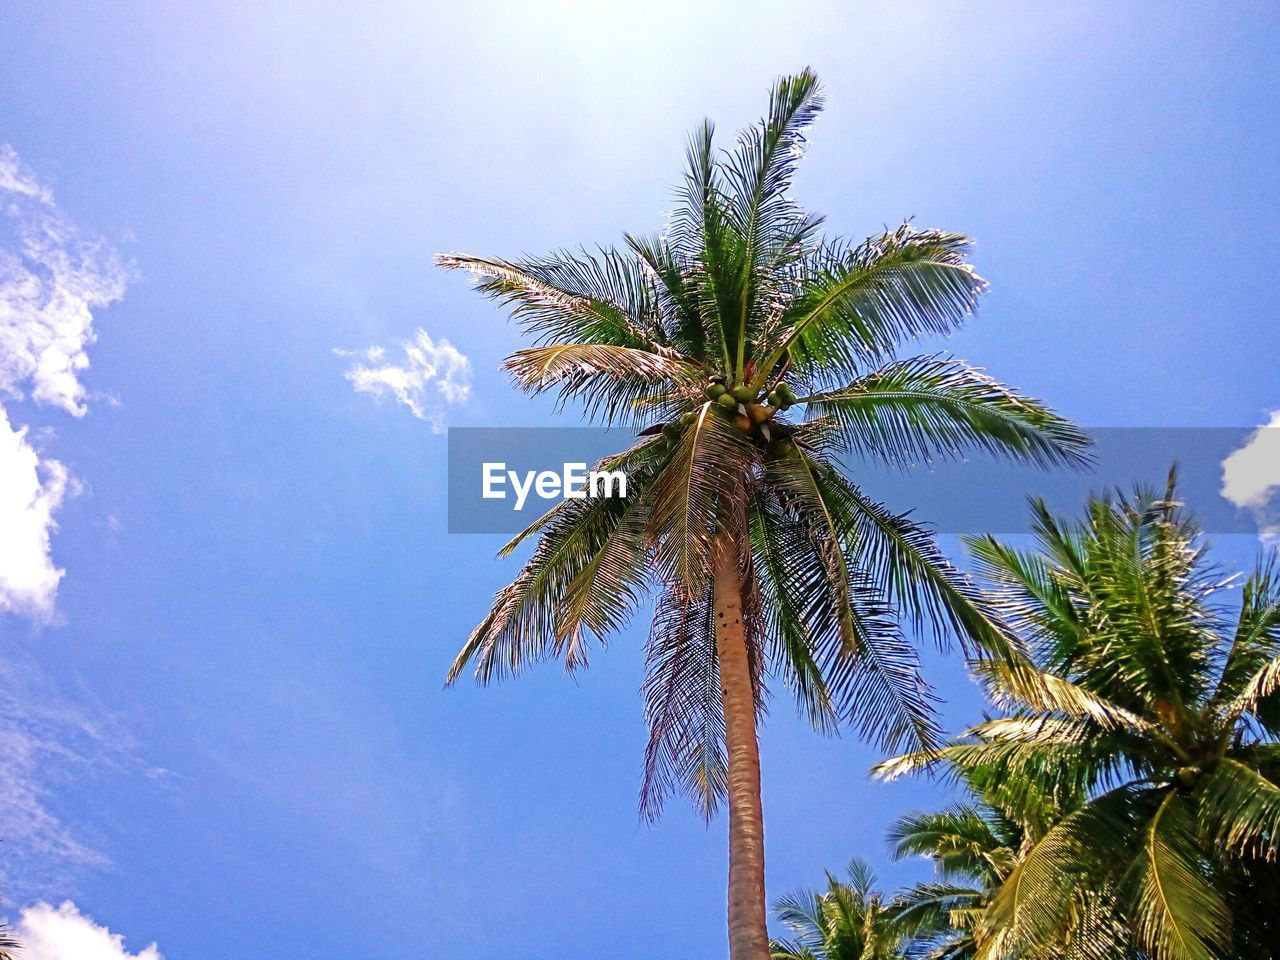 palm tree, tree, low angle view, sky, nature, beauty in nature, growth, scenics, day, no people, palm frond, tranquility, outdoors, blue